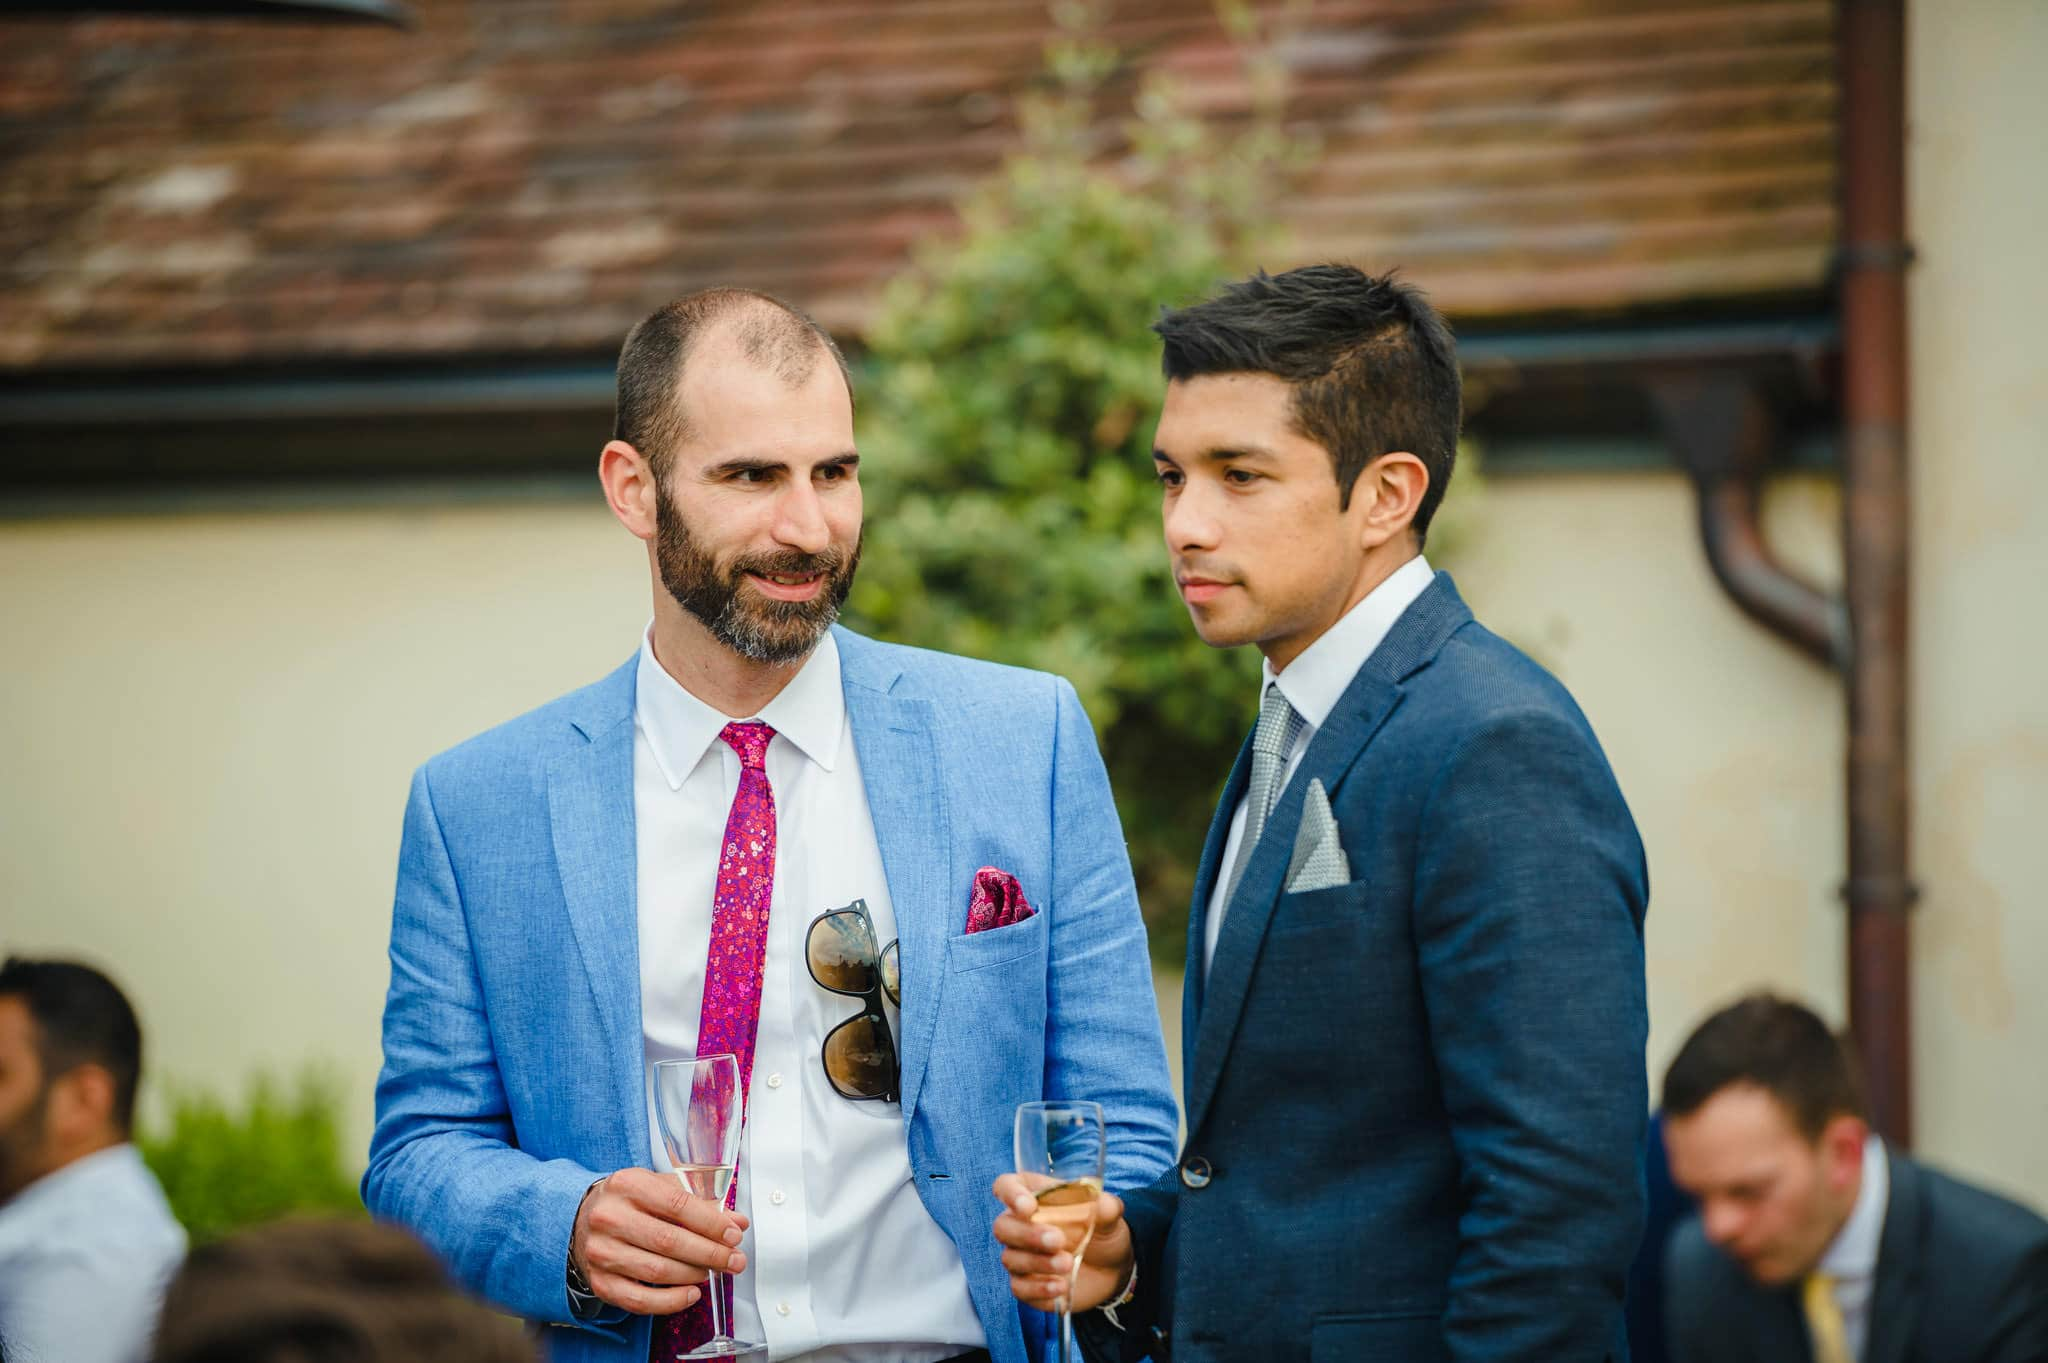 Wedding at Redhouse Barn in Stoke Prior, Worcestershire 158